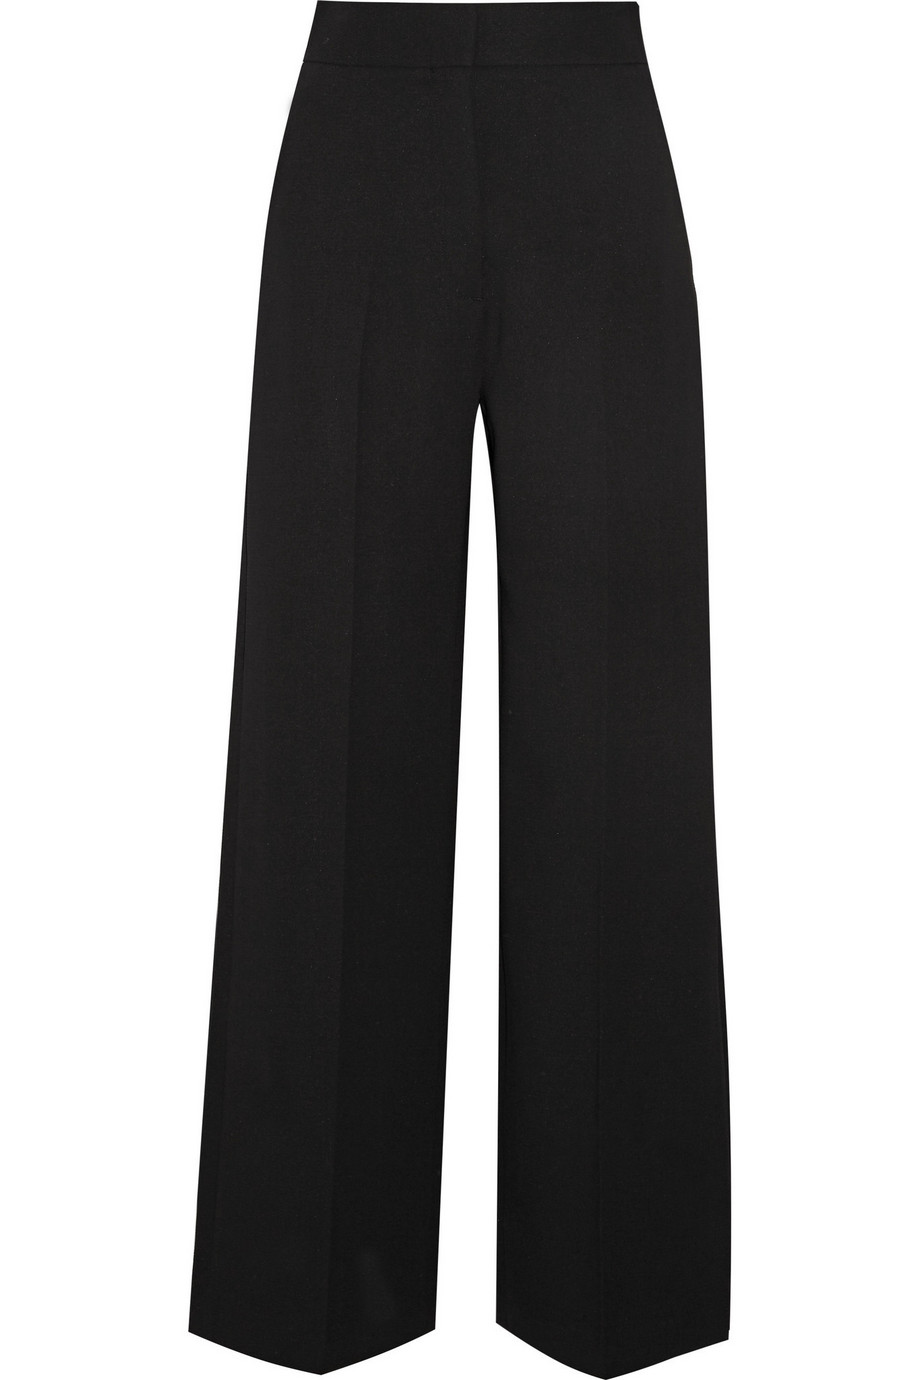 Rosetta Getty Twill Wide-Leg Pants, Black, Women's, Size: 4